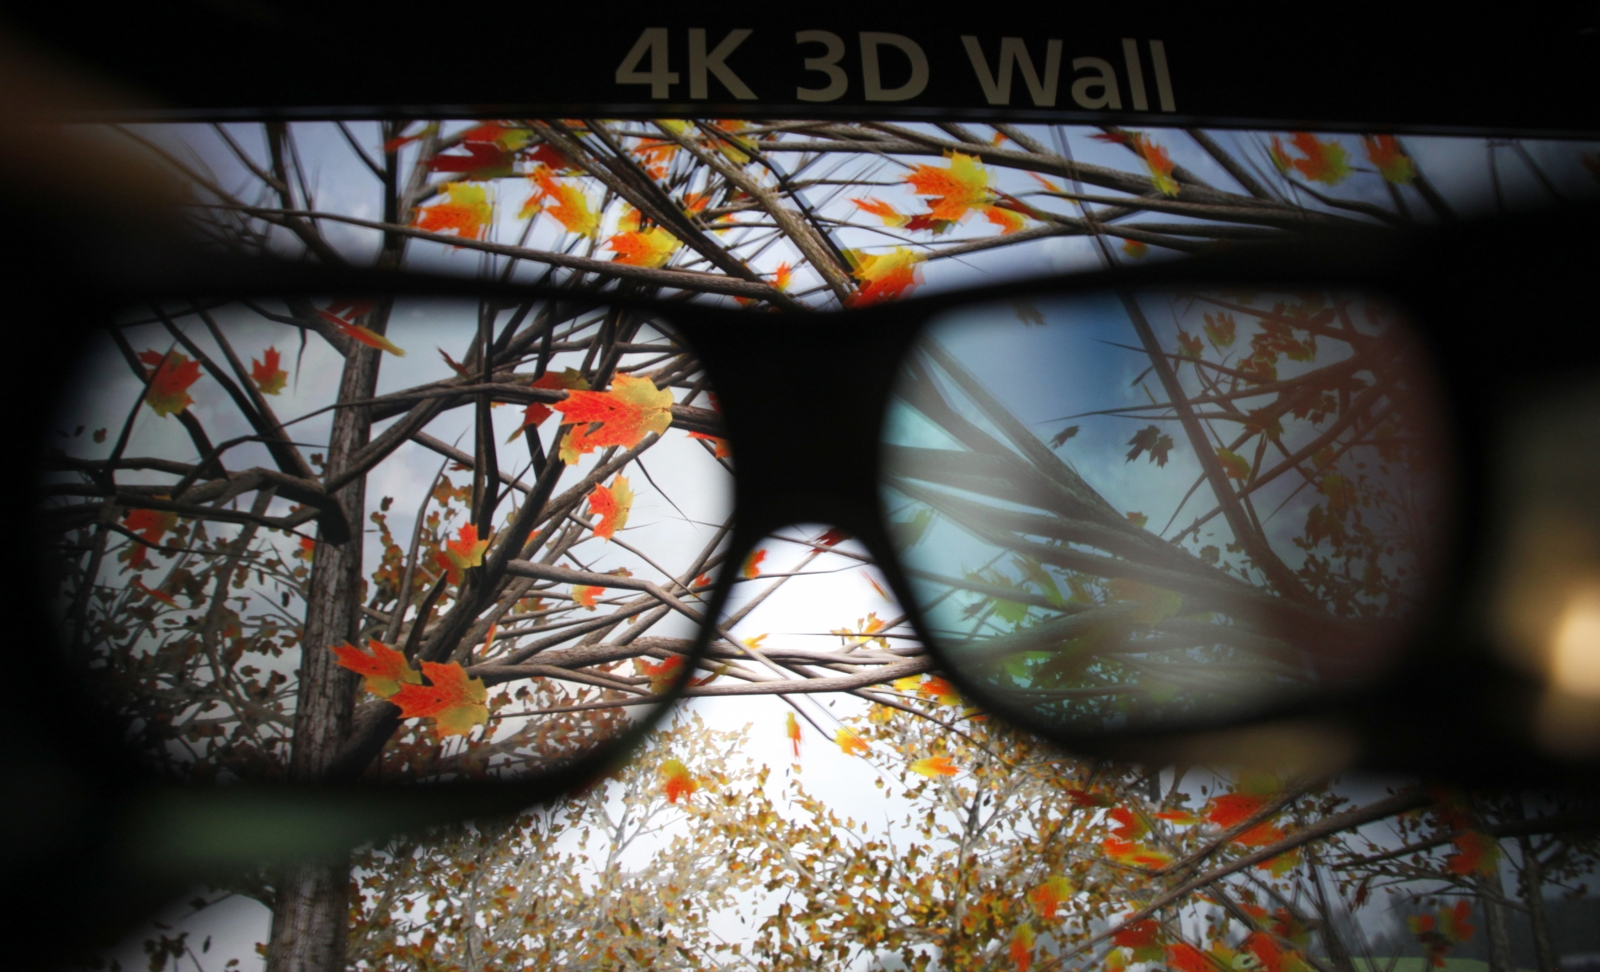 MIT Develops 3D Technology Without Glasses That Works Theatre-Wide